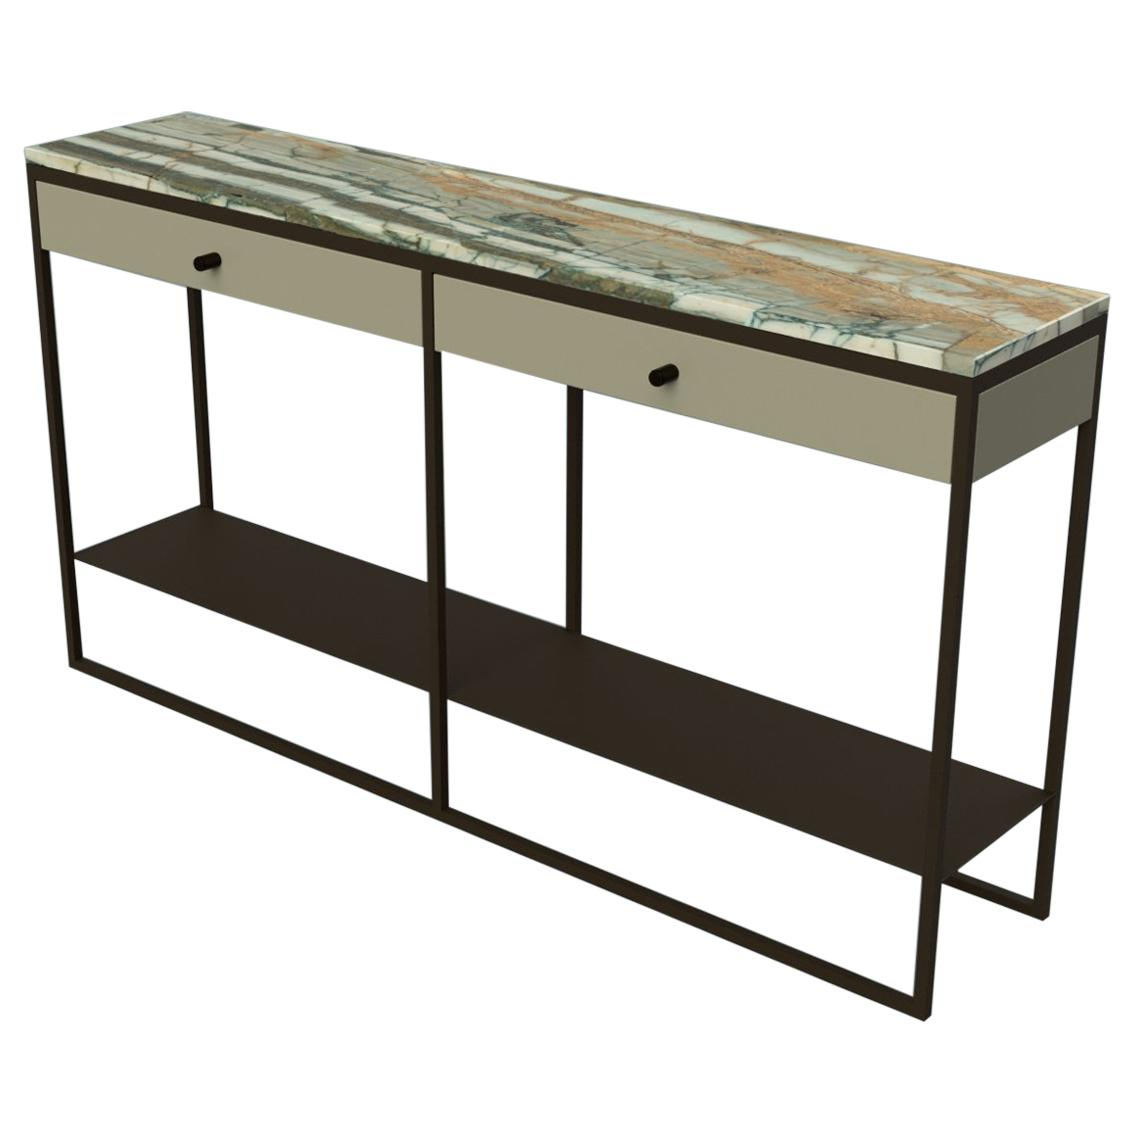 Long Console Tables - 327 For Sale On 1Stdibs in Mix Patina Metal Frame Console Tables (Image 15 of 30)